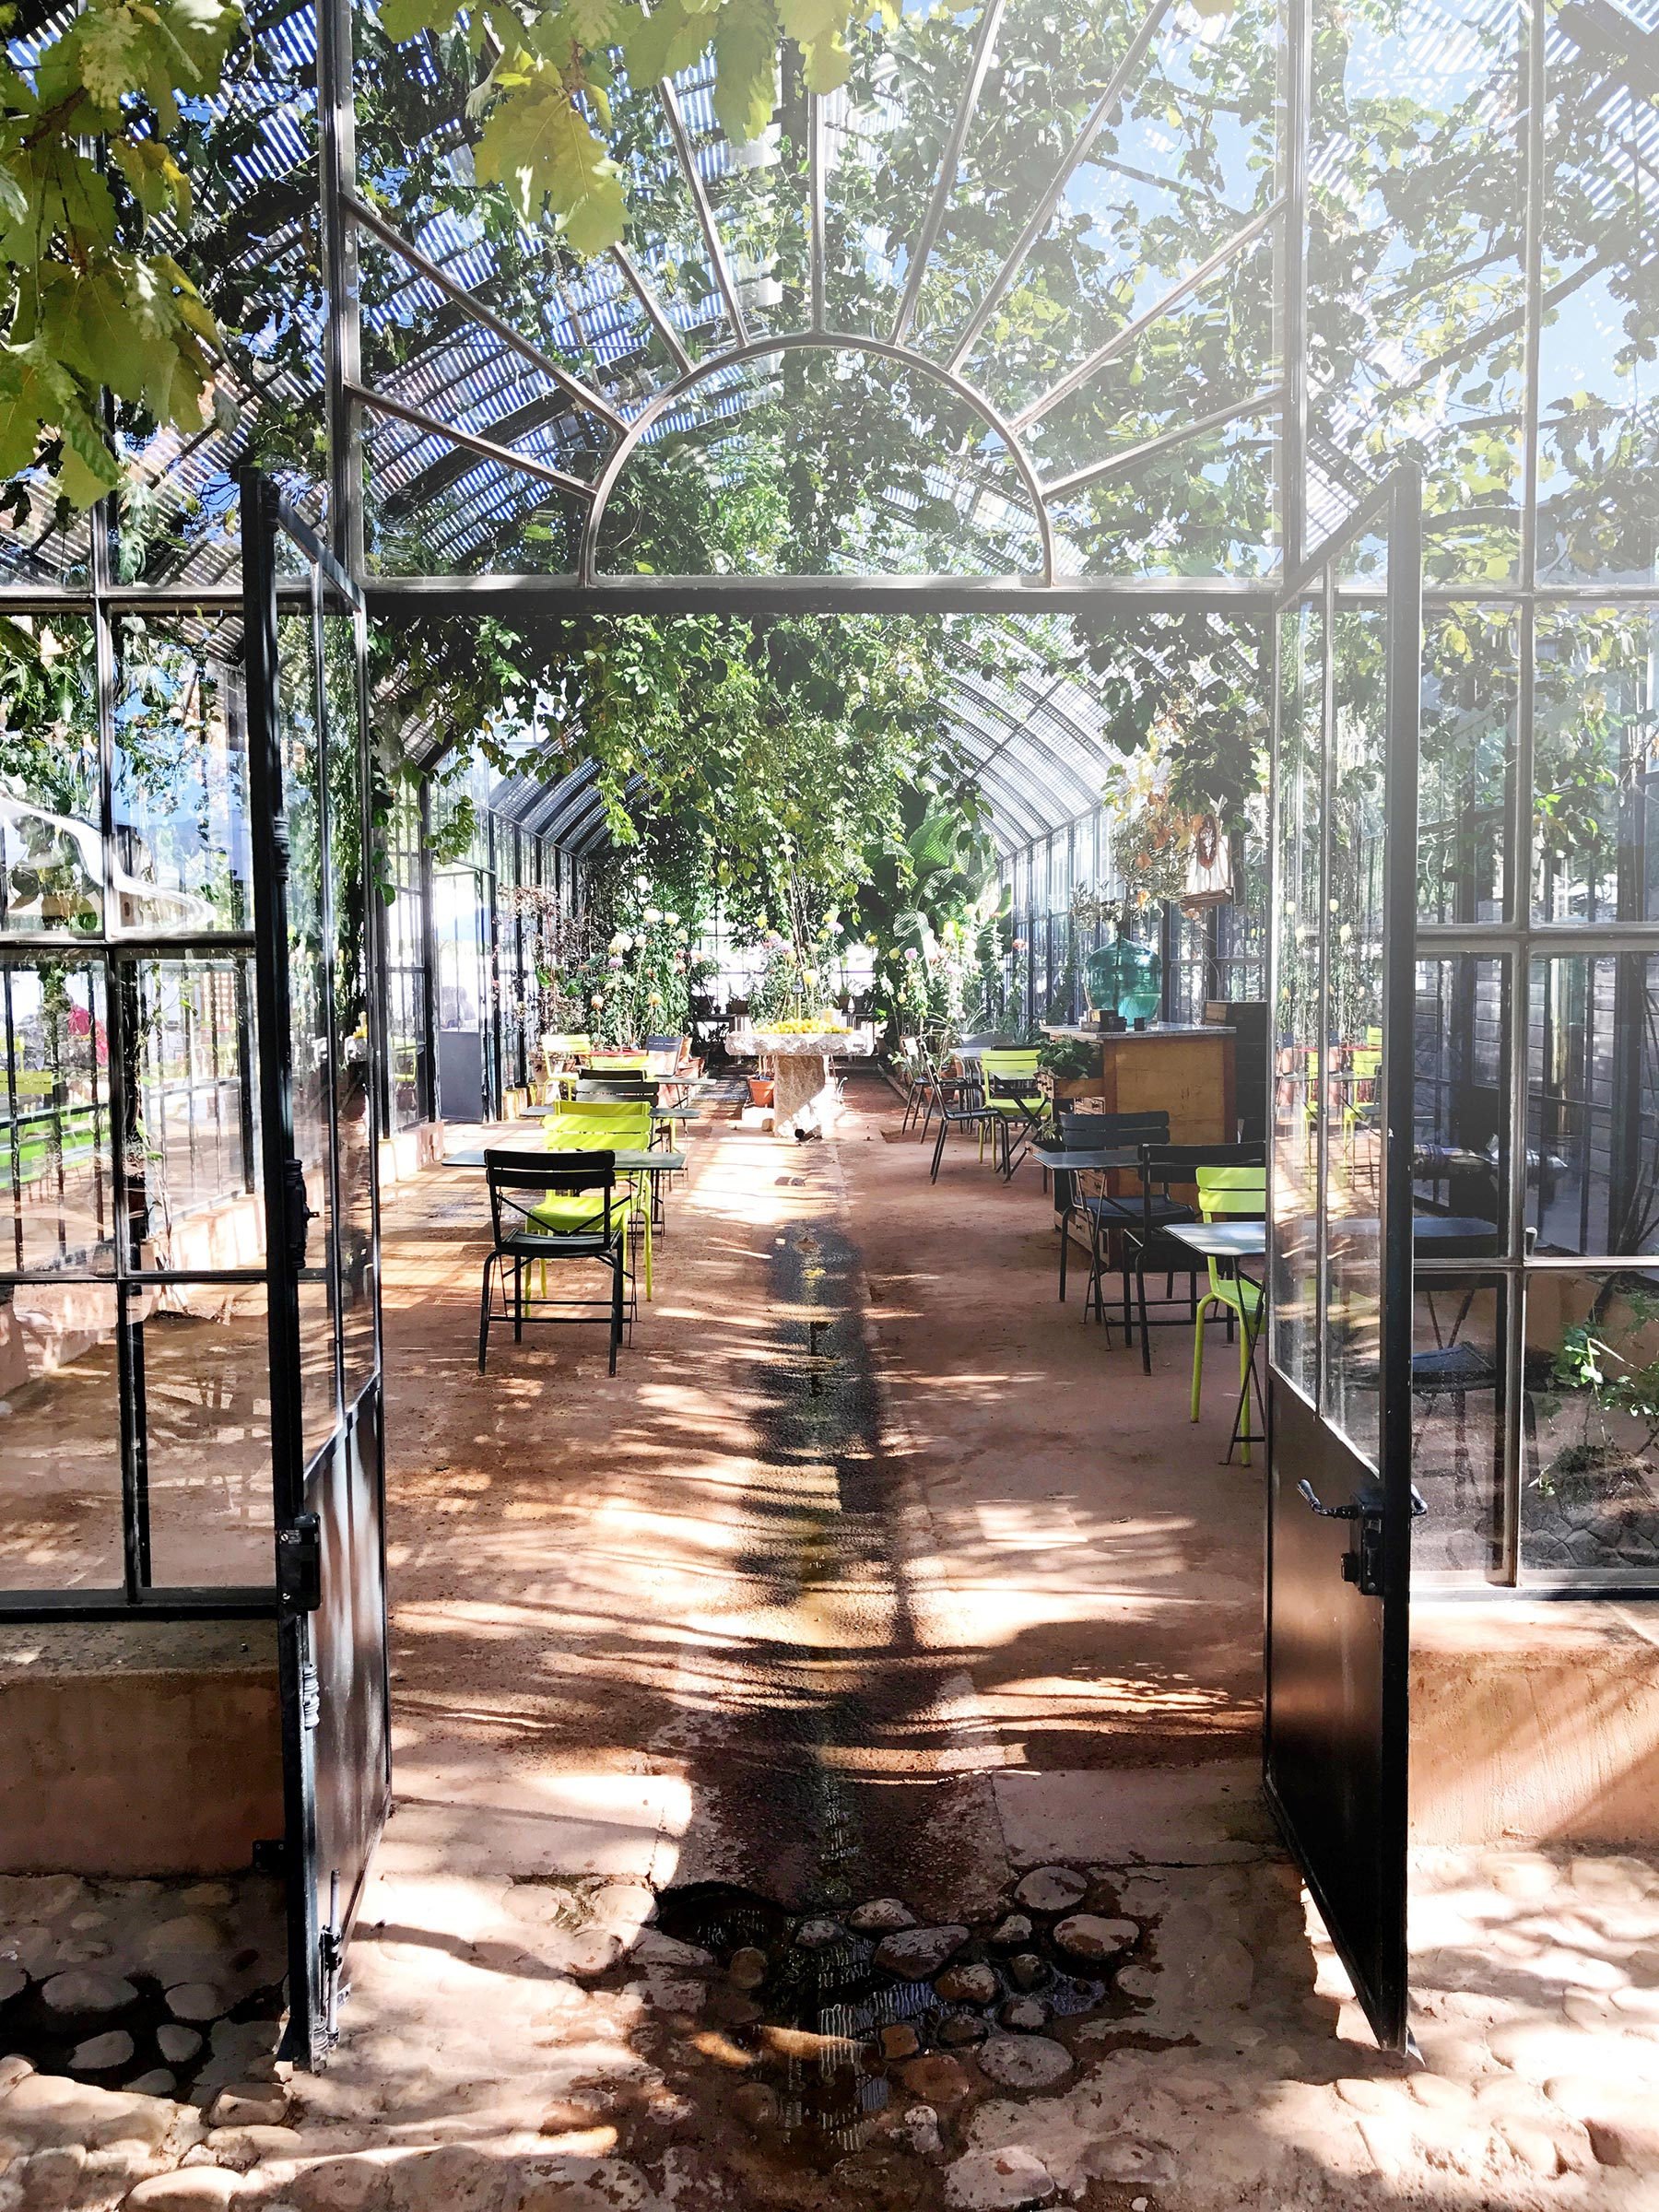 The Greenhouse at Babylonstoren. What a gorgeous setting for a meal. Franschhoek made for a lovely part of our 10 days in South Africa. #southafrica #travel #franschhoek